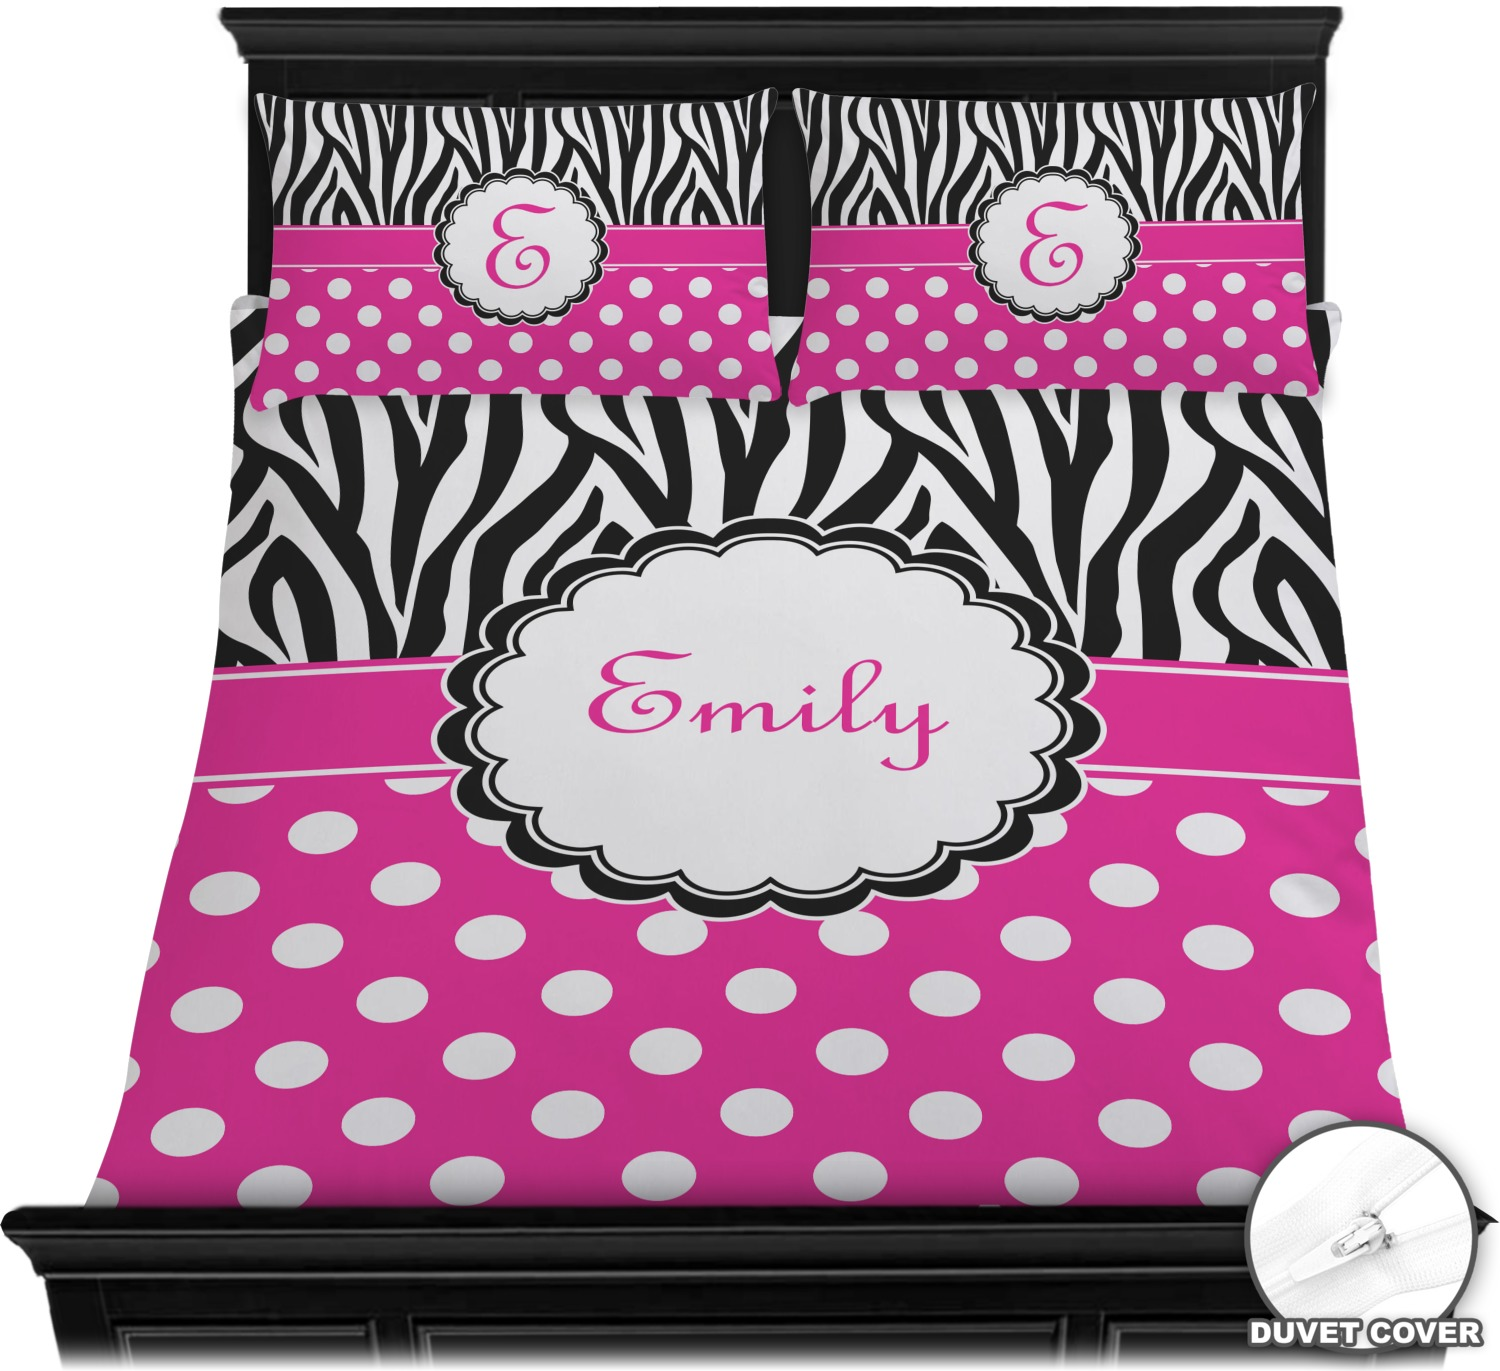 Zebra Print & Polka Dots Duvet Cover Set Personalized YouCustomizeIt